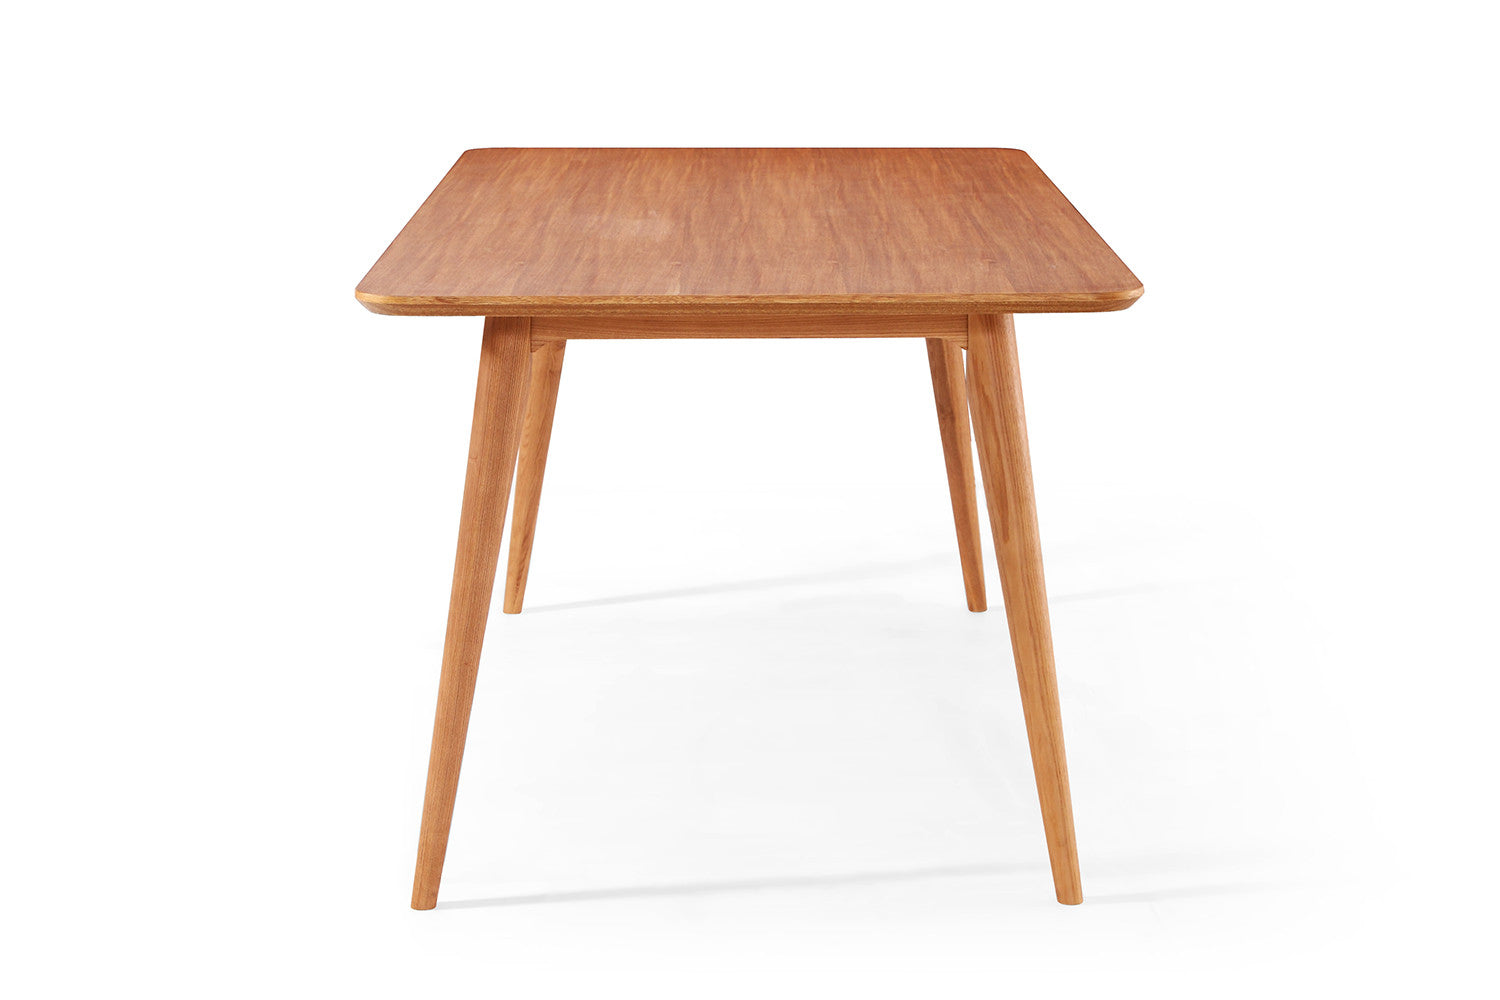 Table de salle manger design en bois julia dewarens for Table salle a manger originale